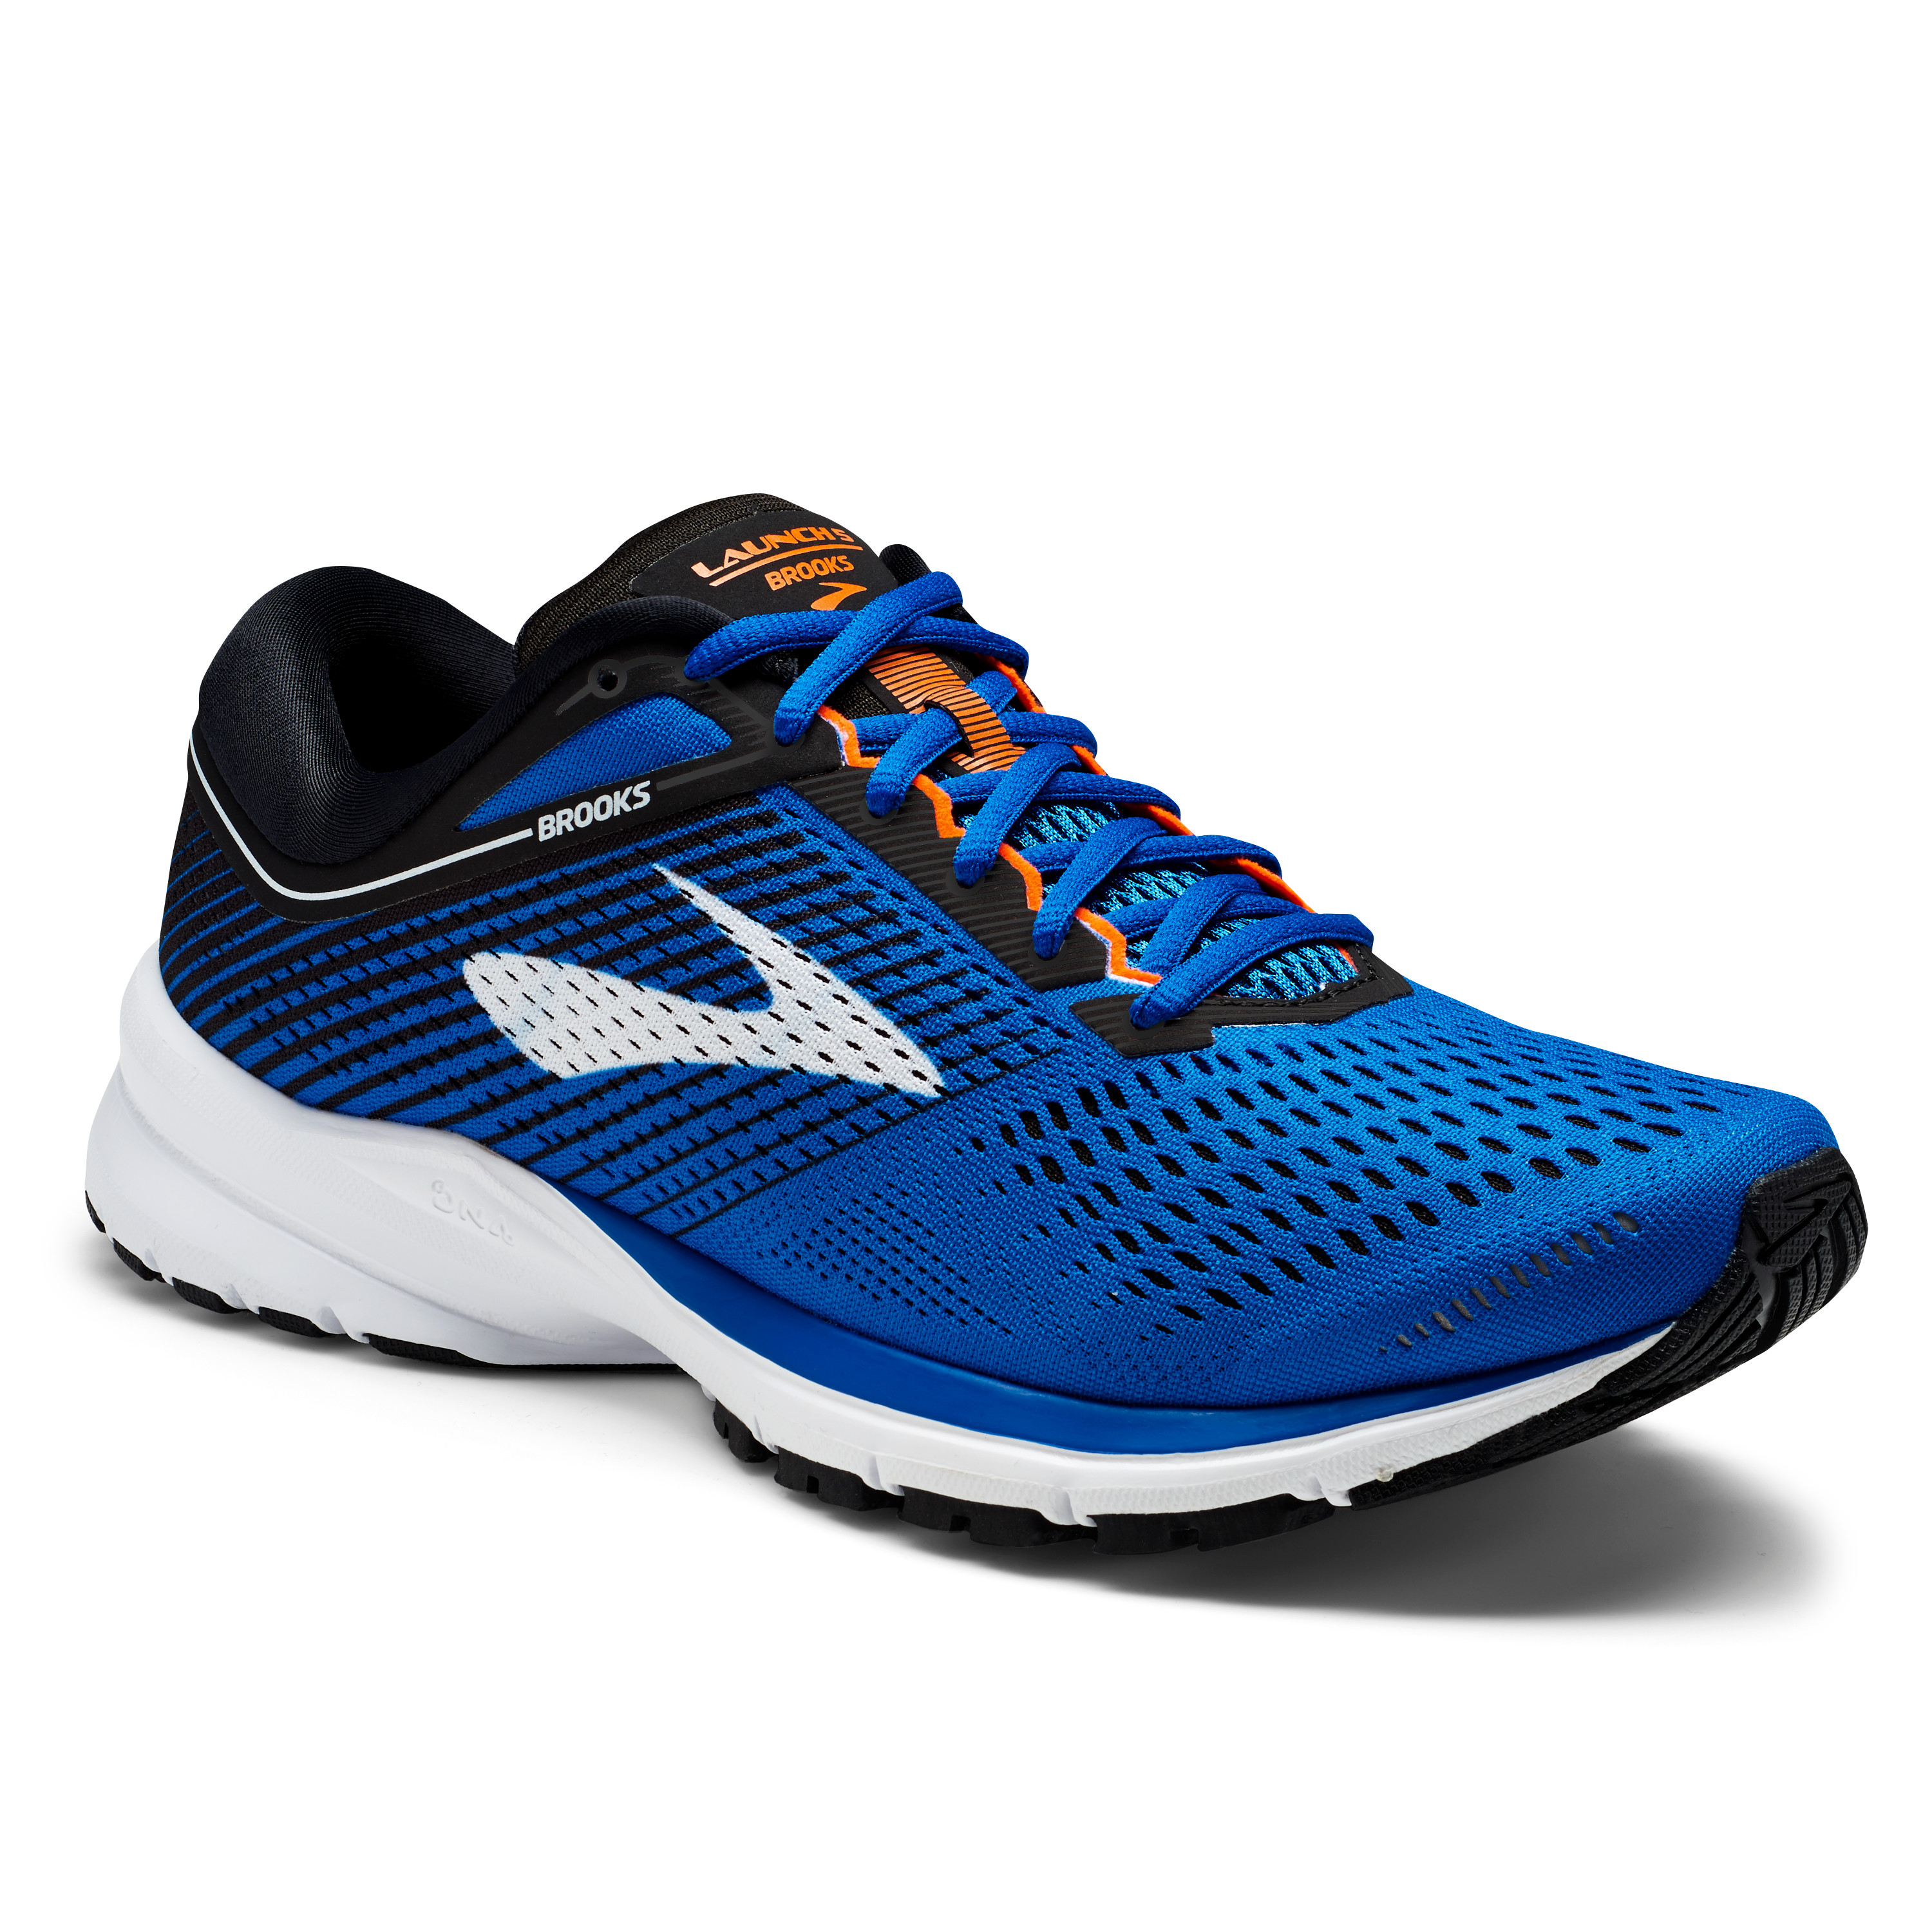 c8e8796b31507 Brooks Launch 5 Running Shoes - Mens